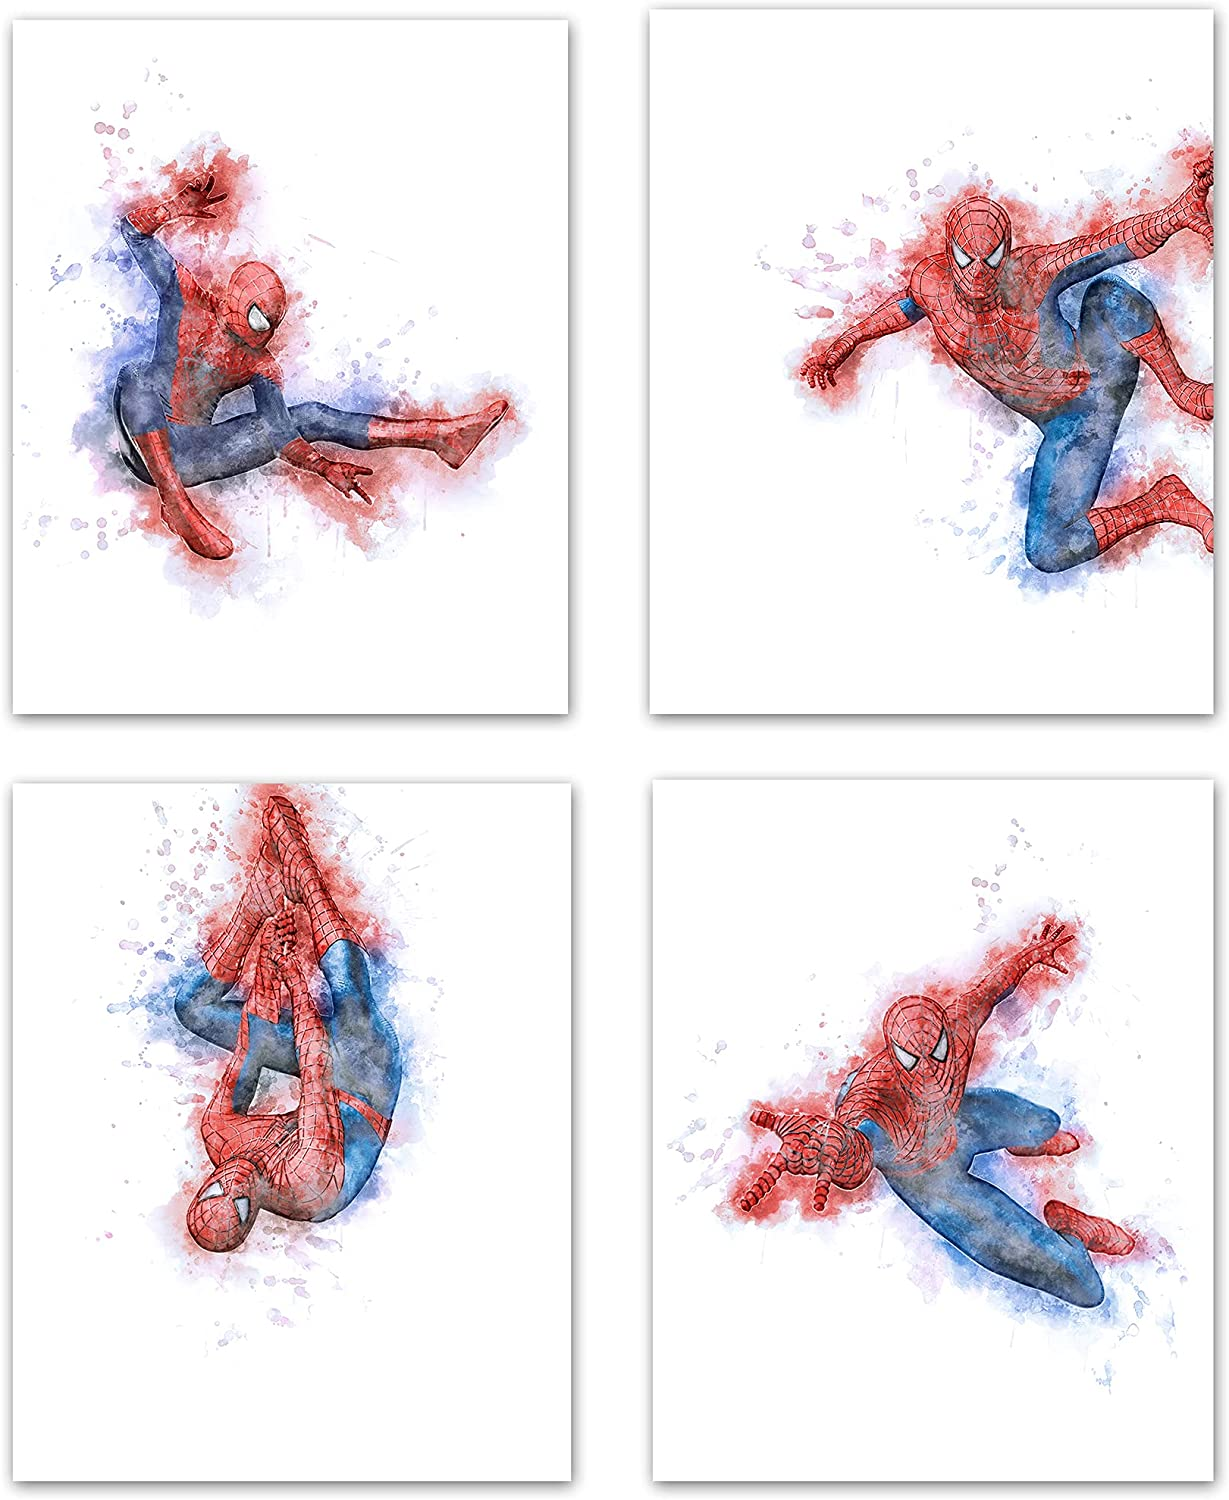 Spiderman Wall Art Decor Poster Prints- Watercolor Spiderman Poster Prints For Boys, Girls Bedroom - Spiderman Wall Posters For Boys Room - Marvel Avengers Poster Prints Boy Room Decor - Spiderman Room Decor For Boys - Set of 4 (8 x 10) Unframed